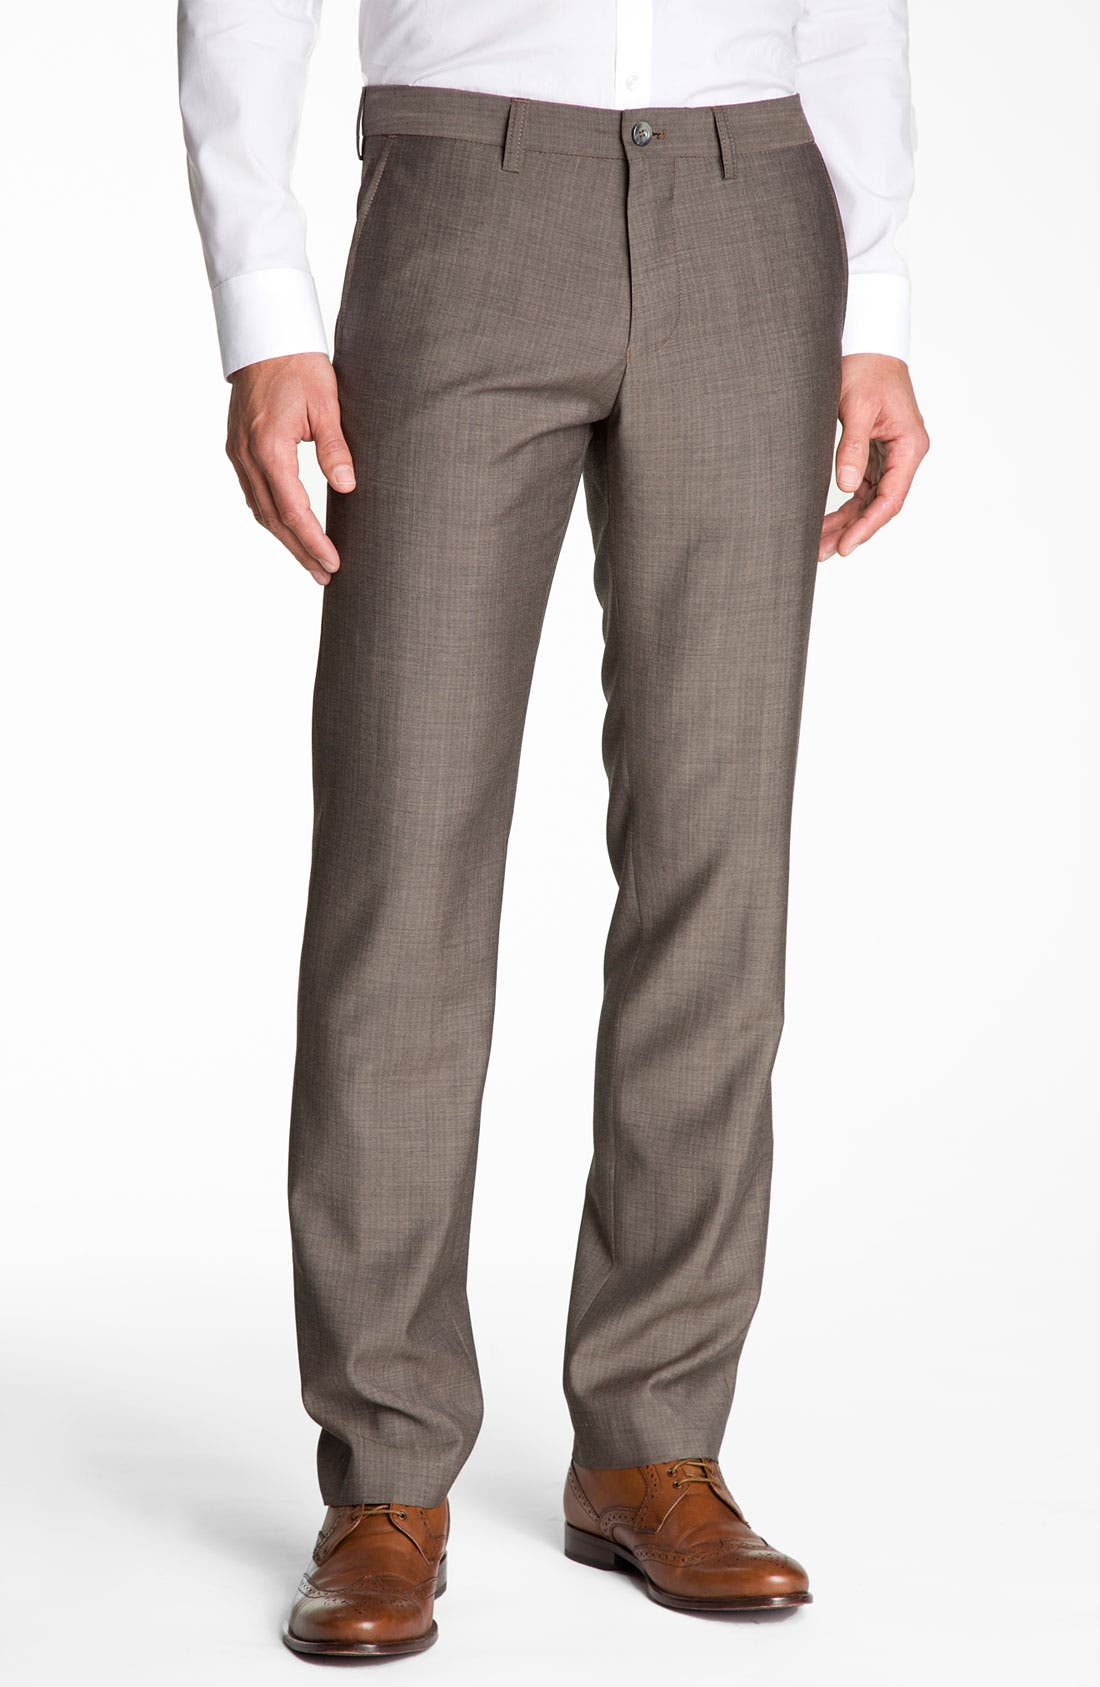 Alternate Image 1 Selected - BOSS Black 'Crigan' Patterned Flat Front Wool Trousers